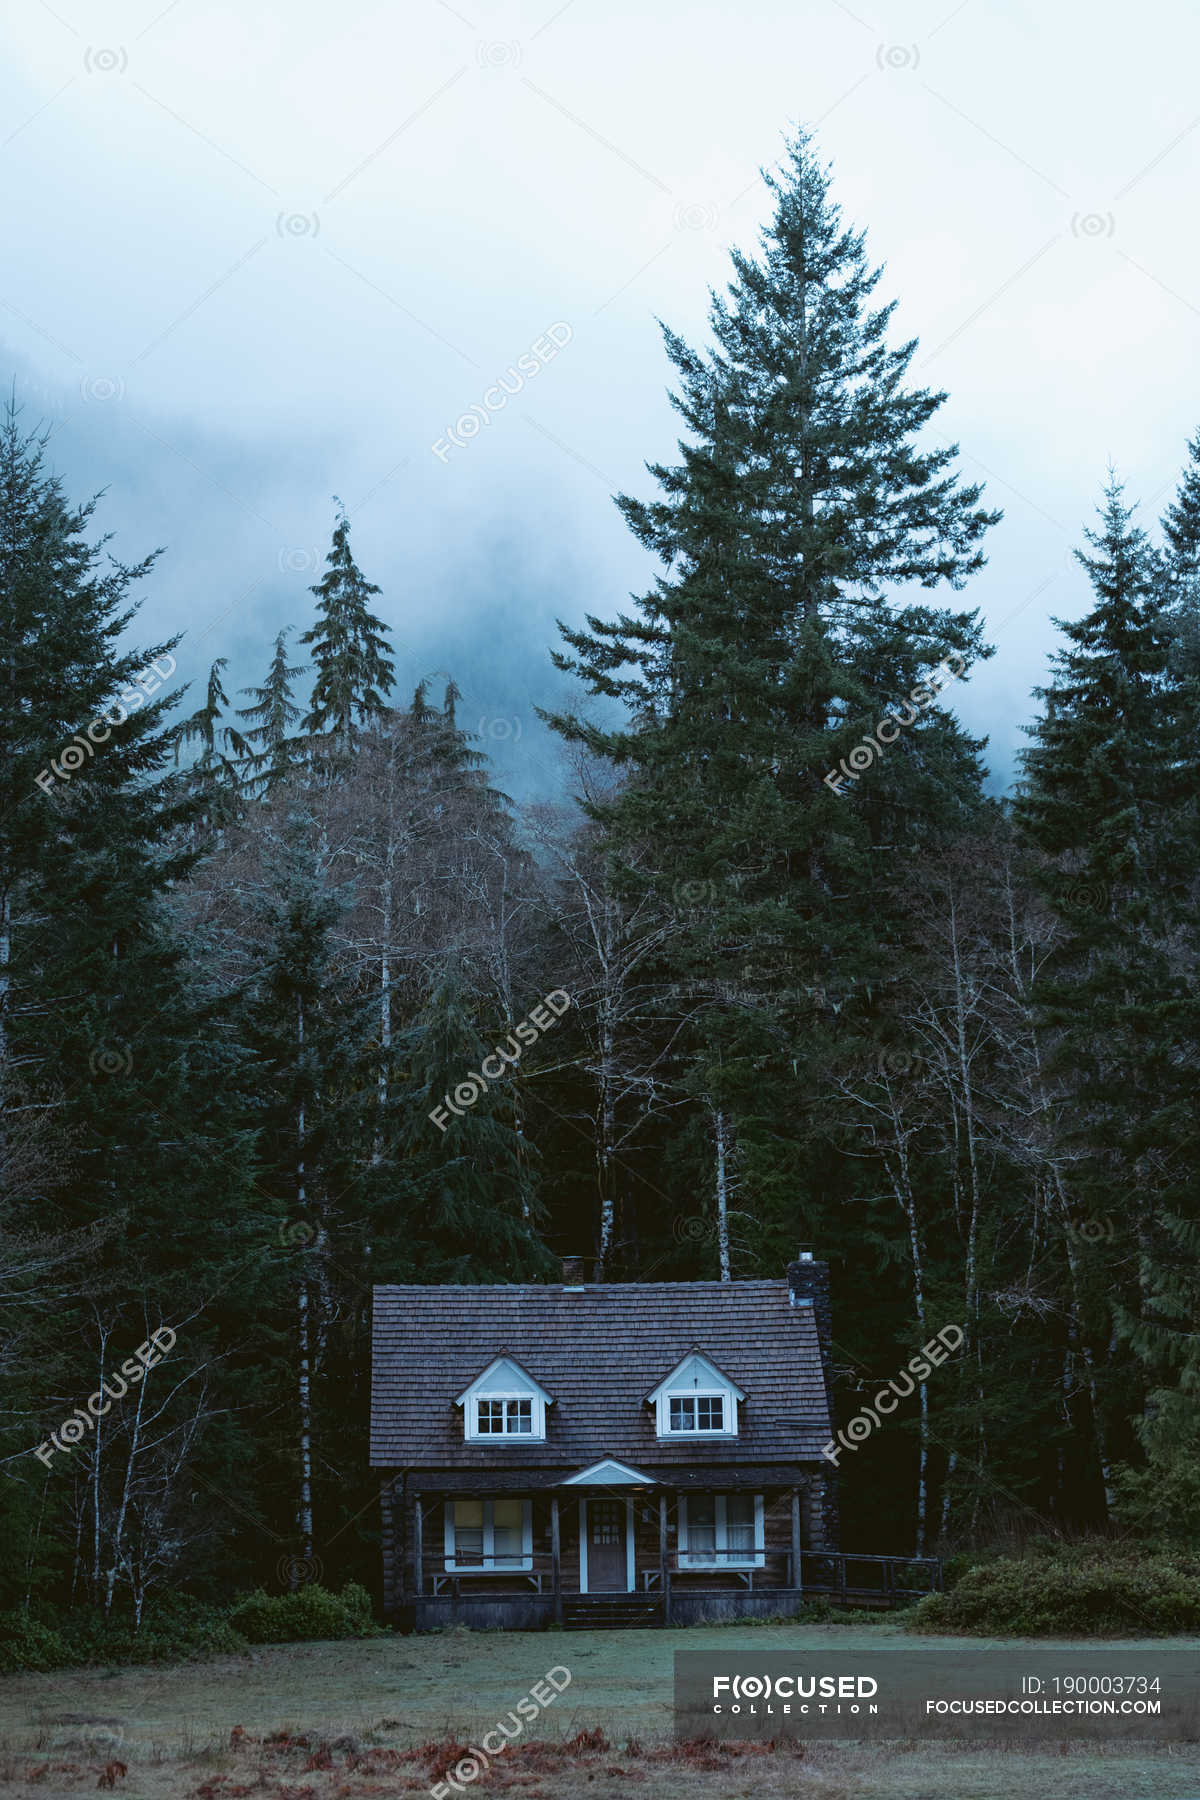 Daytime View Of Wooden House Near Forest Scenic Background Stock Photo 190003734